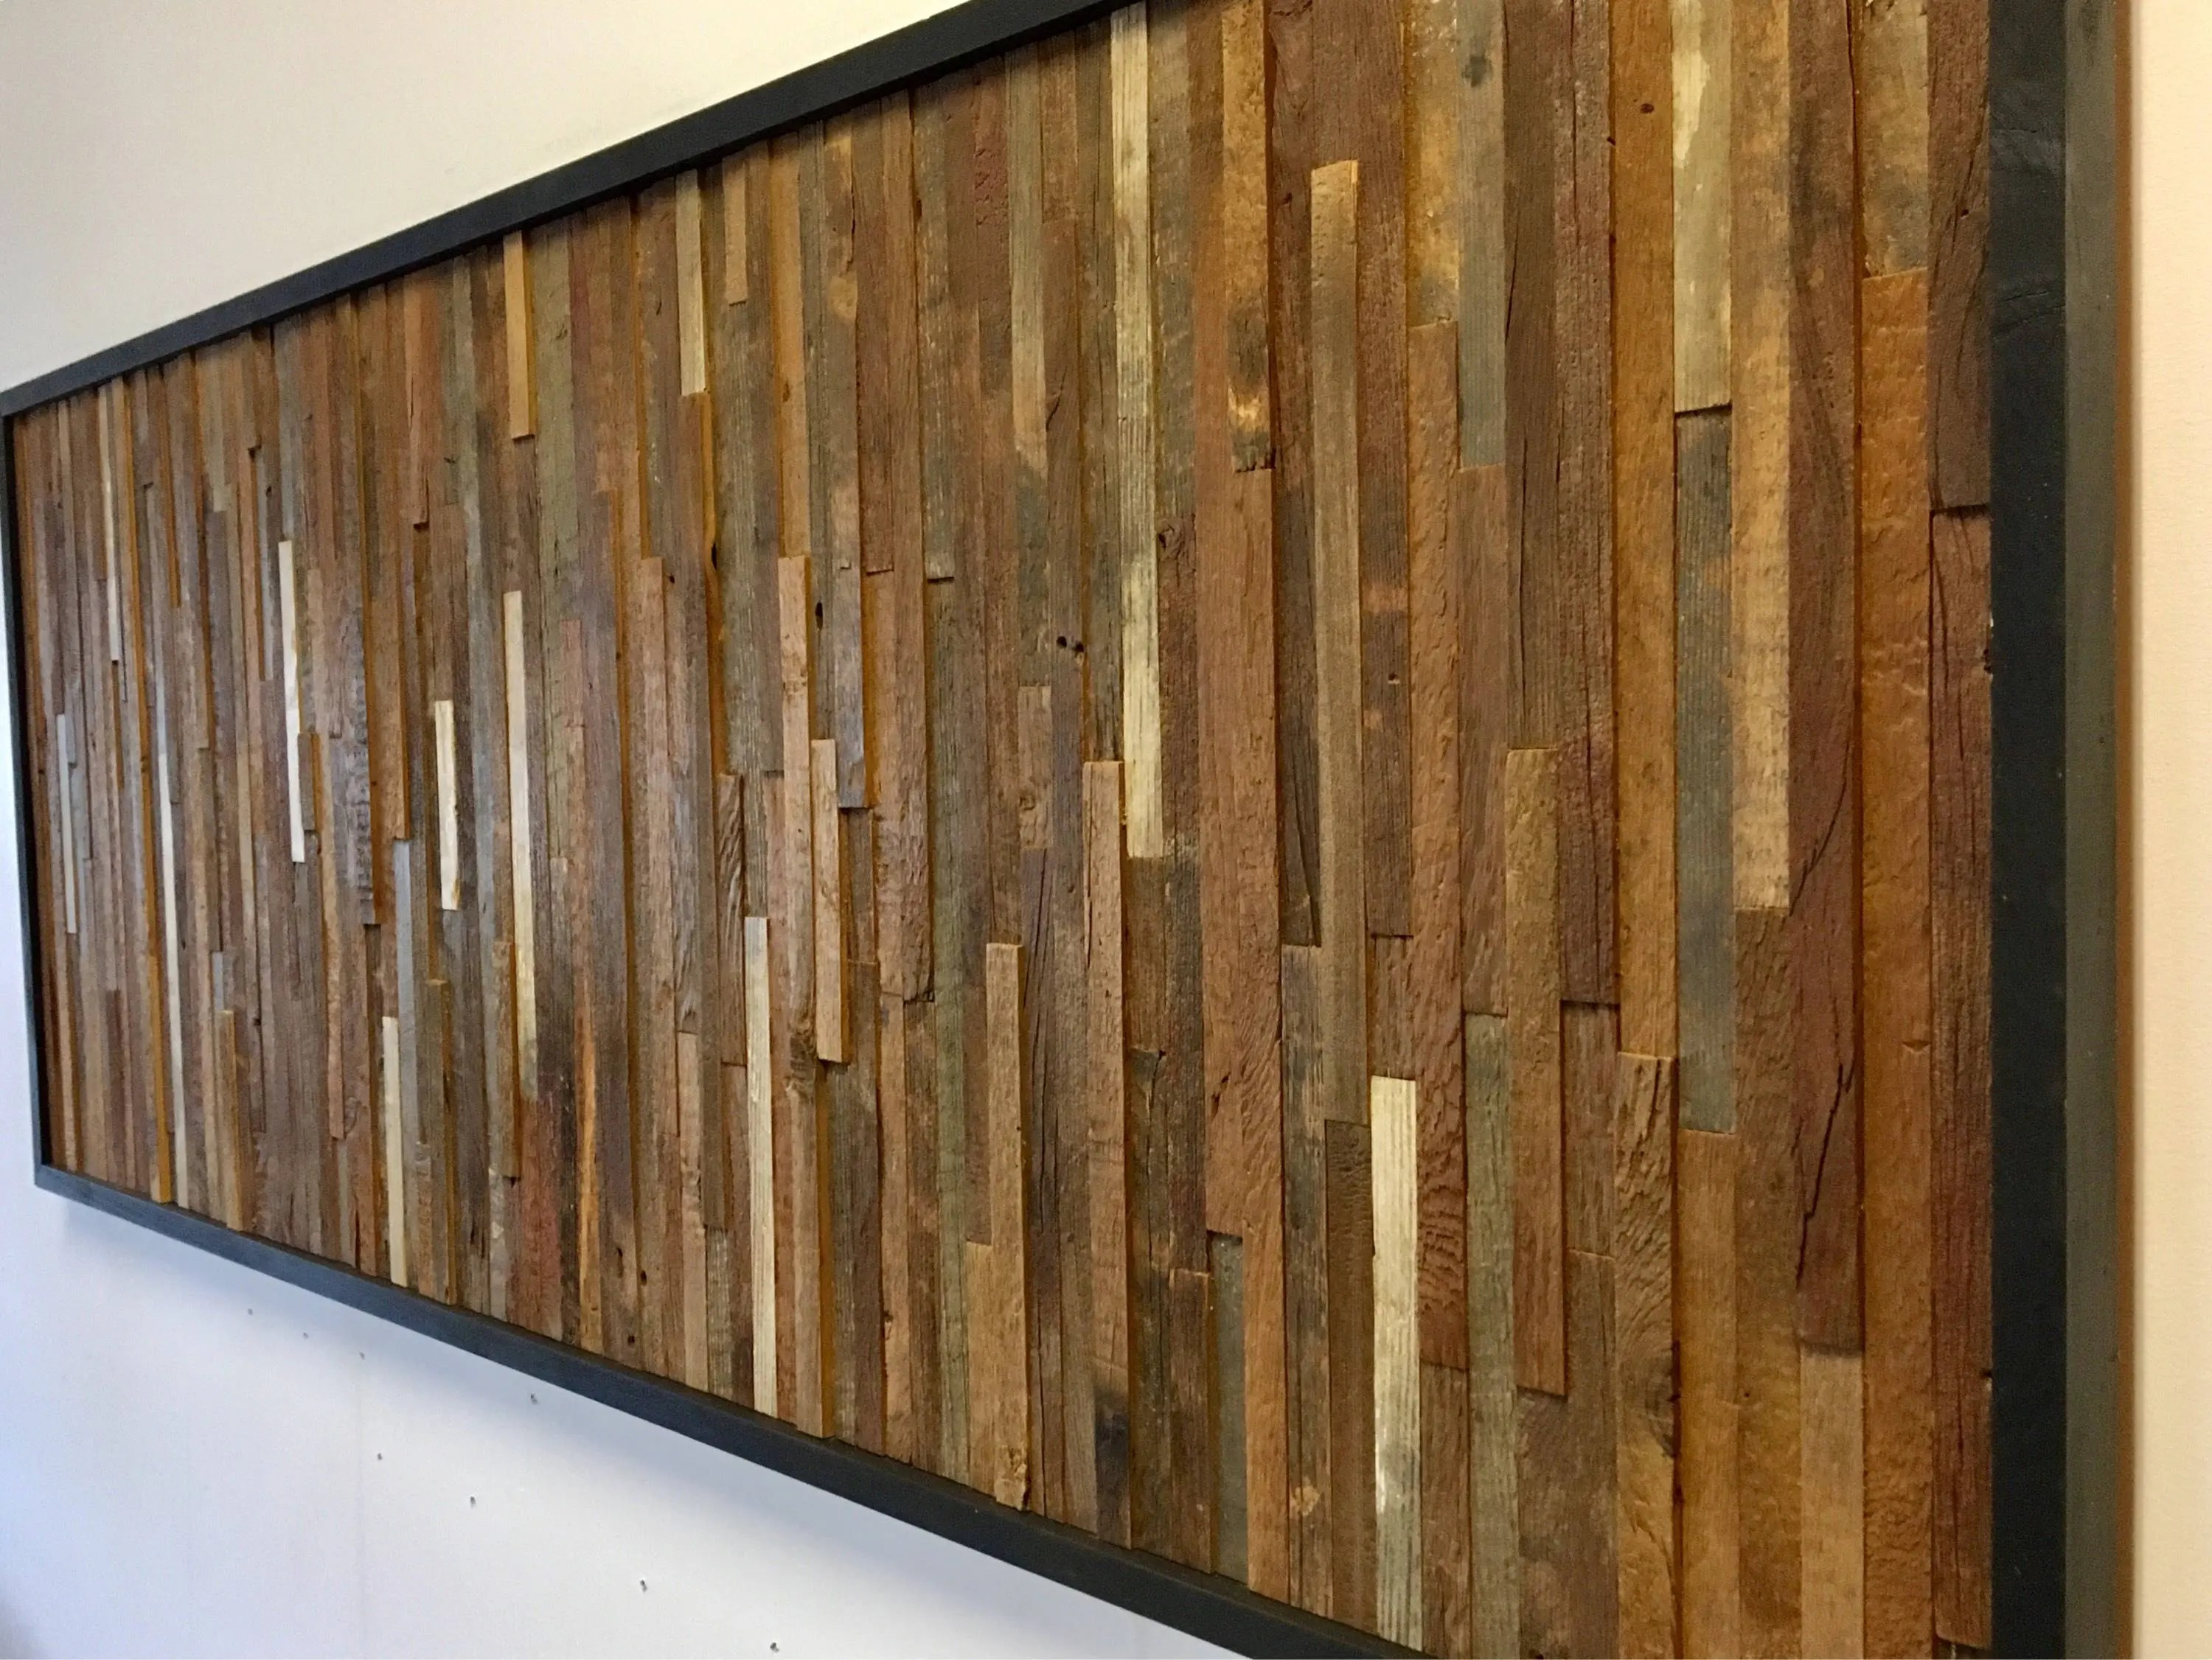 Vertical Wood Slat Wall Reclaimed Barn Wood Wall Art Vertical Slats Free Shipping